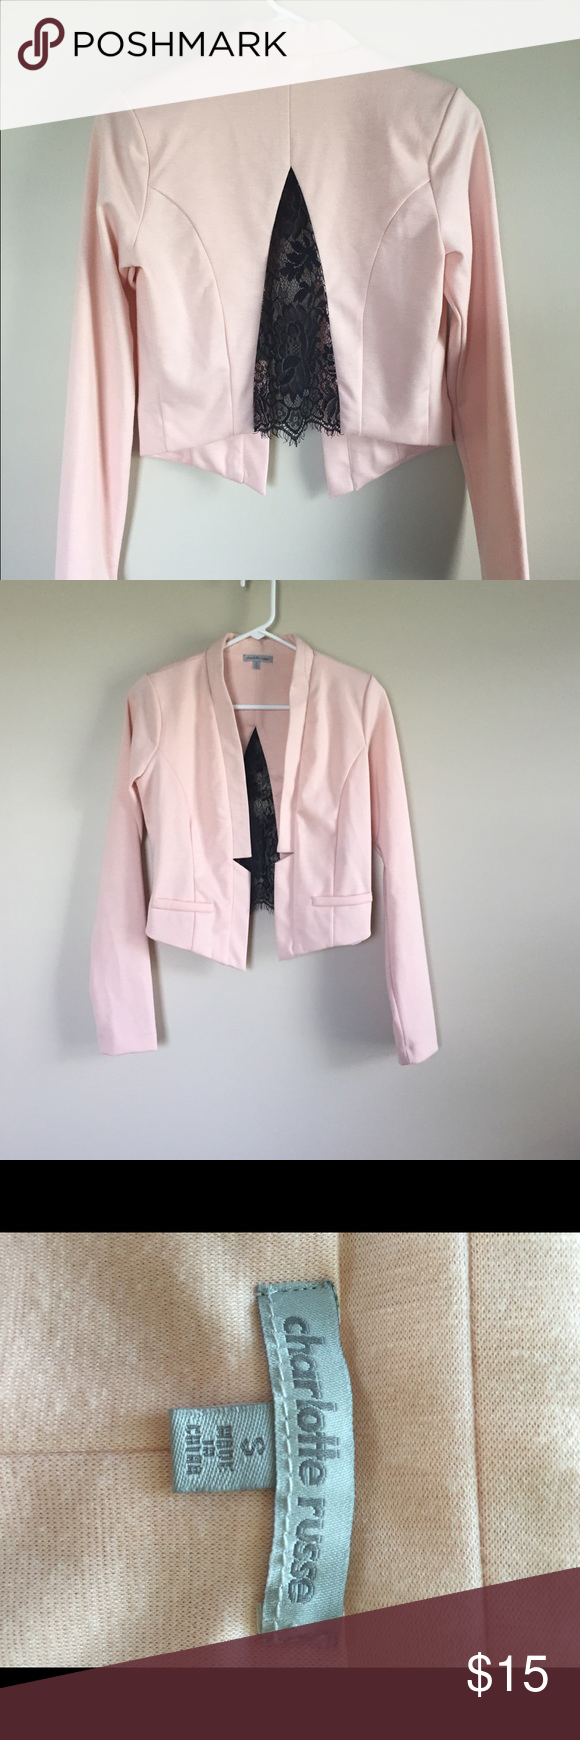 Trendy Crop Jacket Trendy crop peach and black lace jacket size S great condition. Charlotte Russe Jackets & Coats Blazers